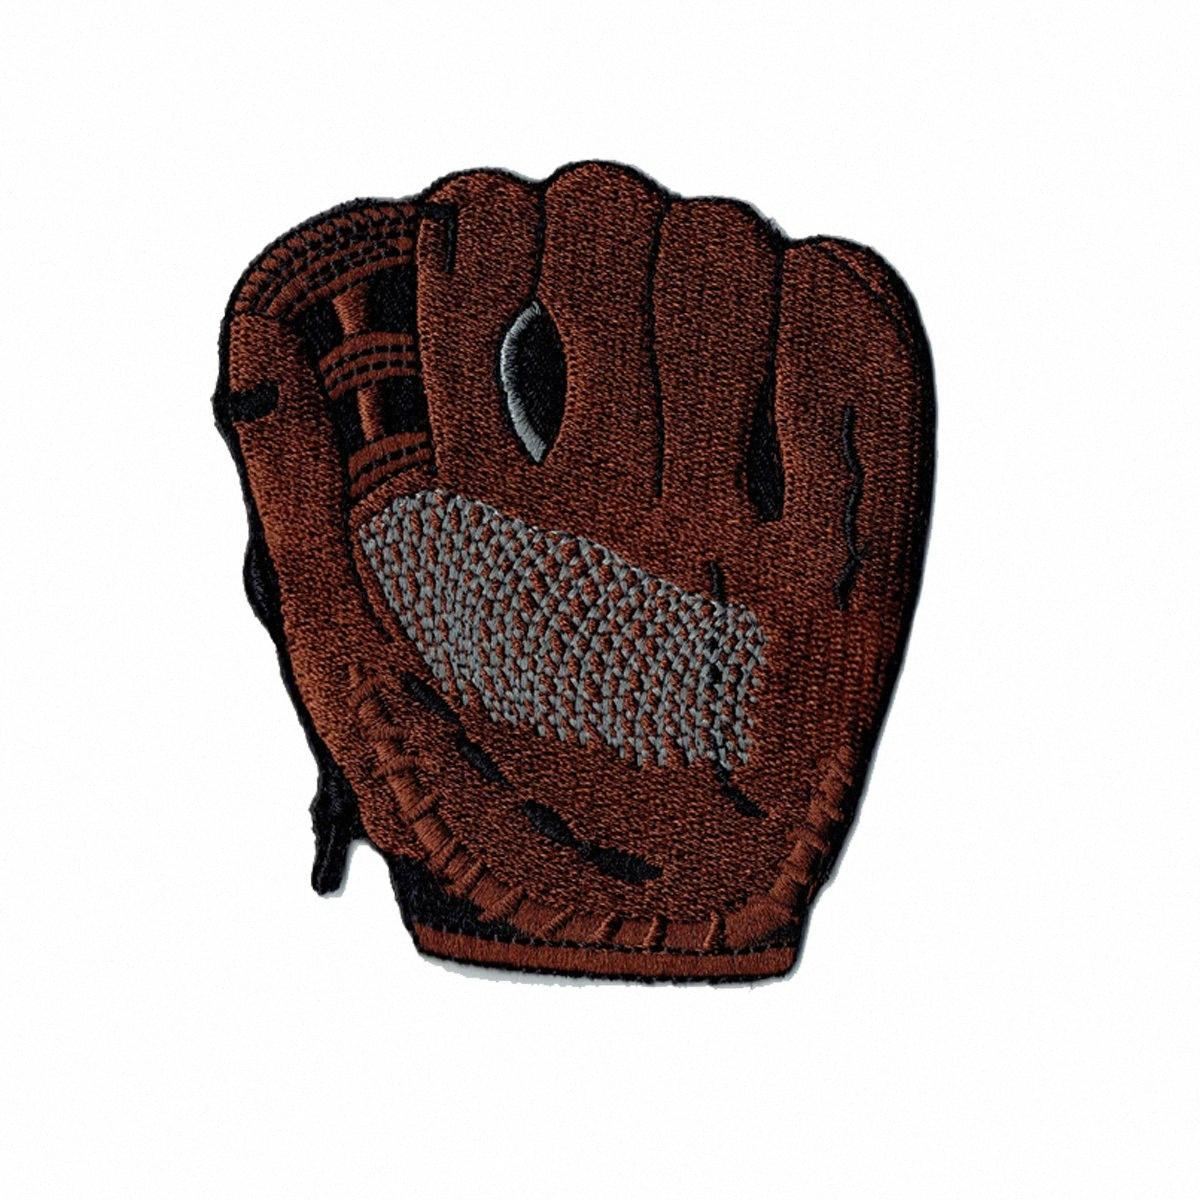 Custom and Unique Baseball Glove Embroidered Iron On Applique Patch for Sport Wear Applique Christmas Gift Brown 8.2cm ztYe#